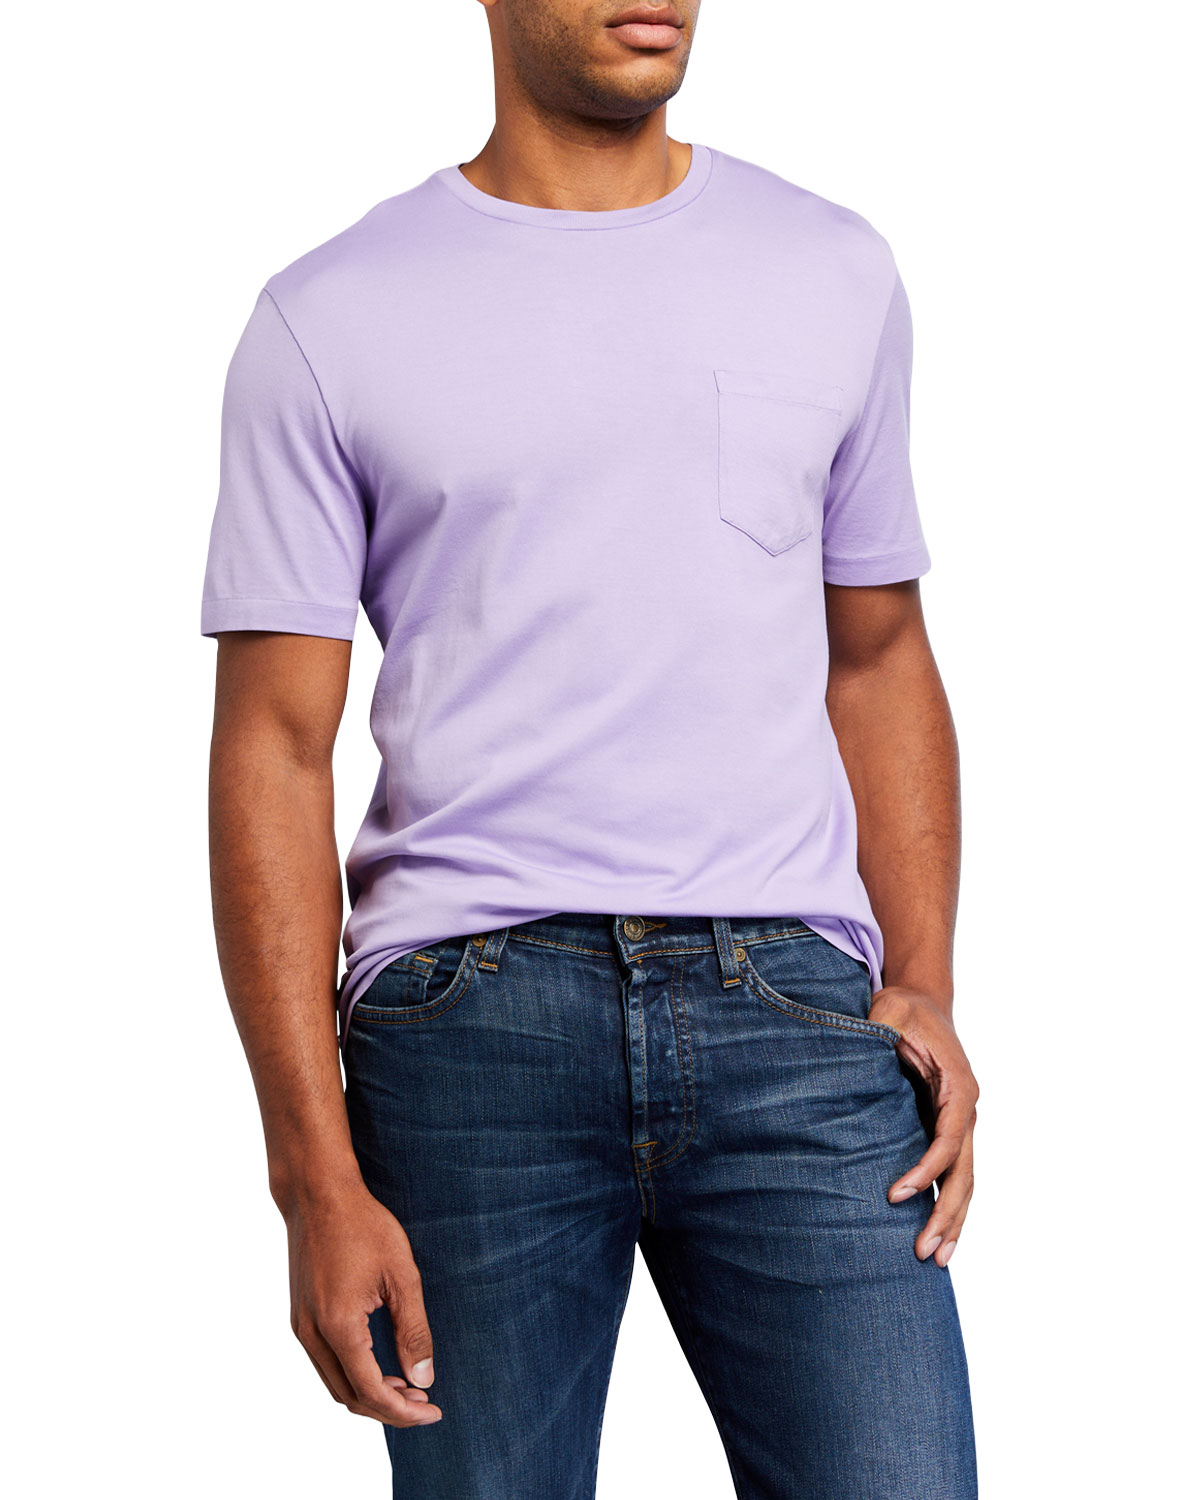 Ralph Lauren T-shirts MEN'S WASHED COTTON POCKET T-SHIRT, LAVENDER